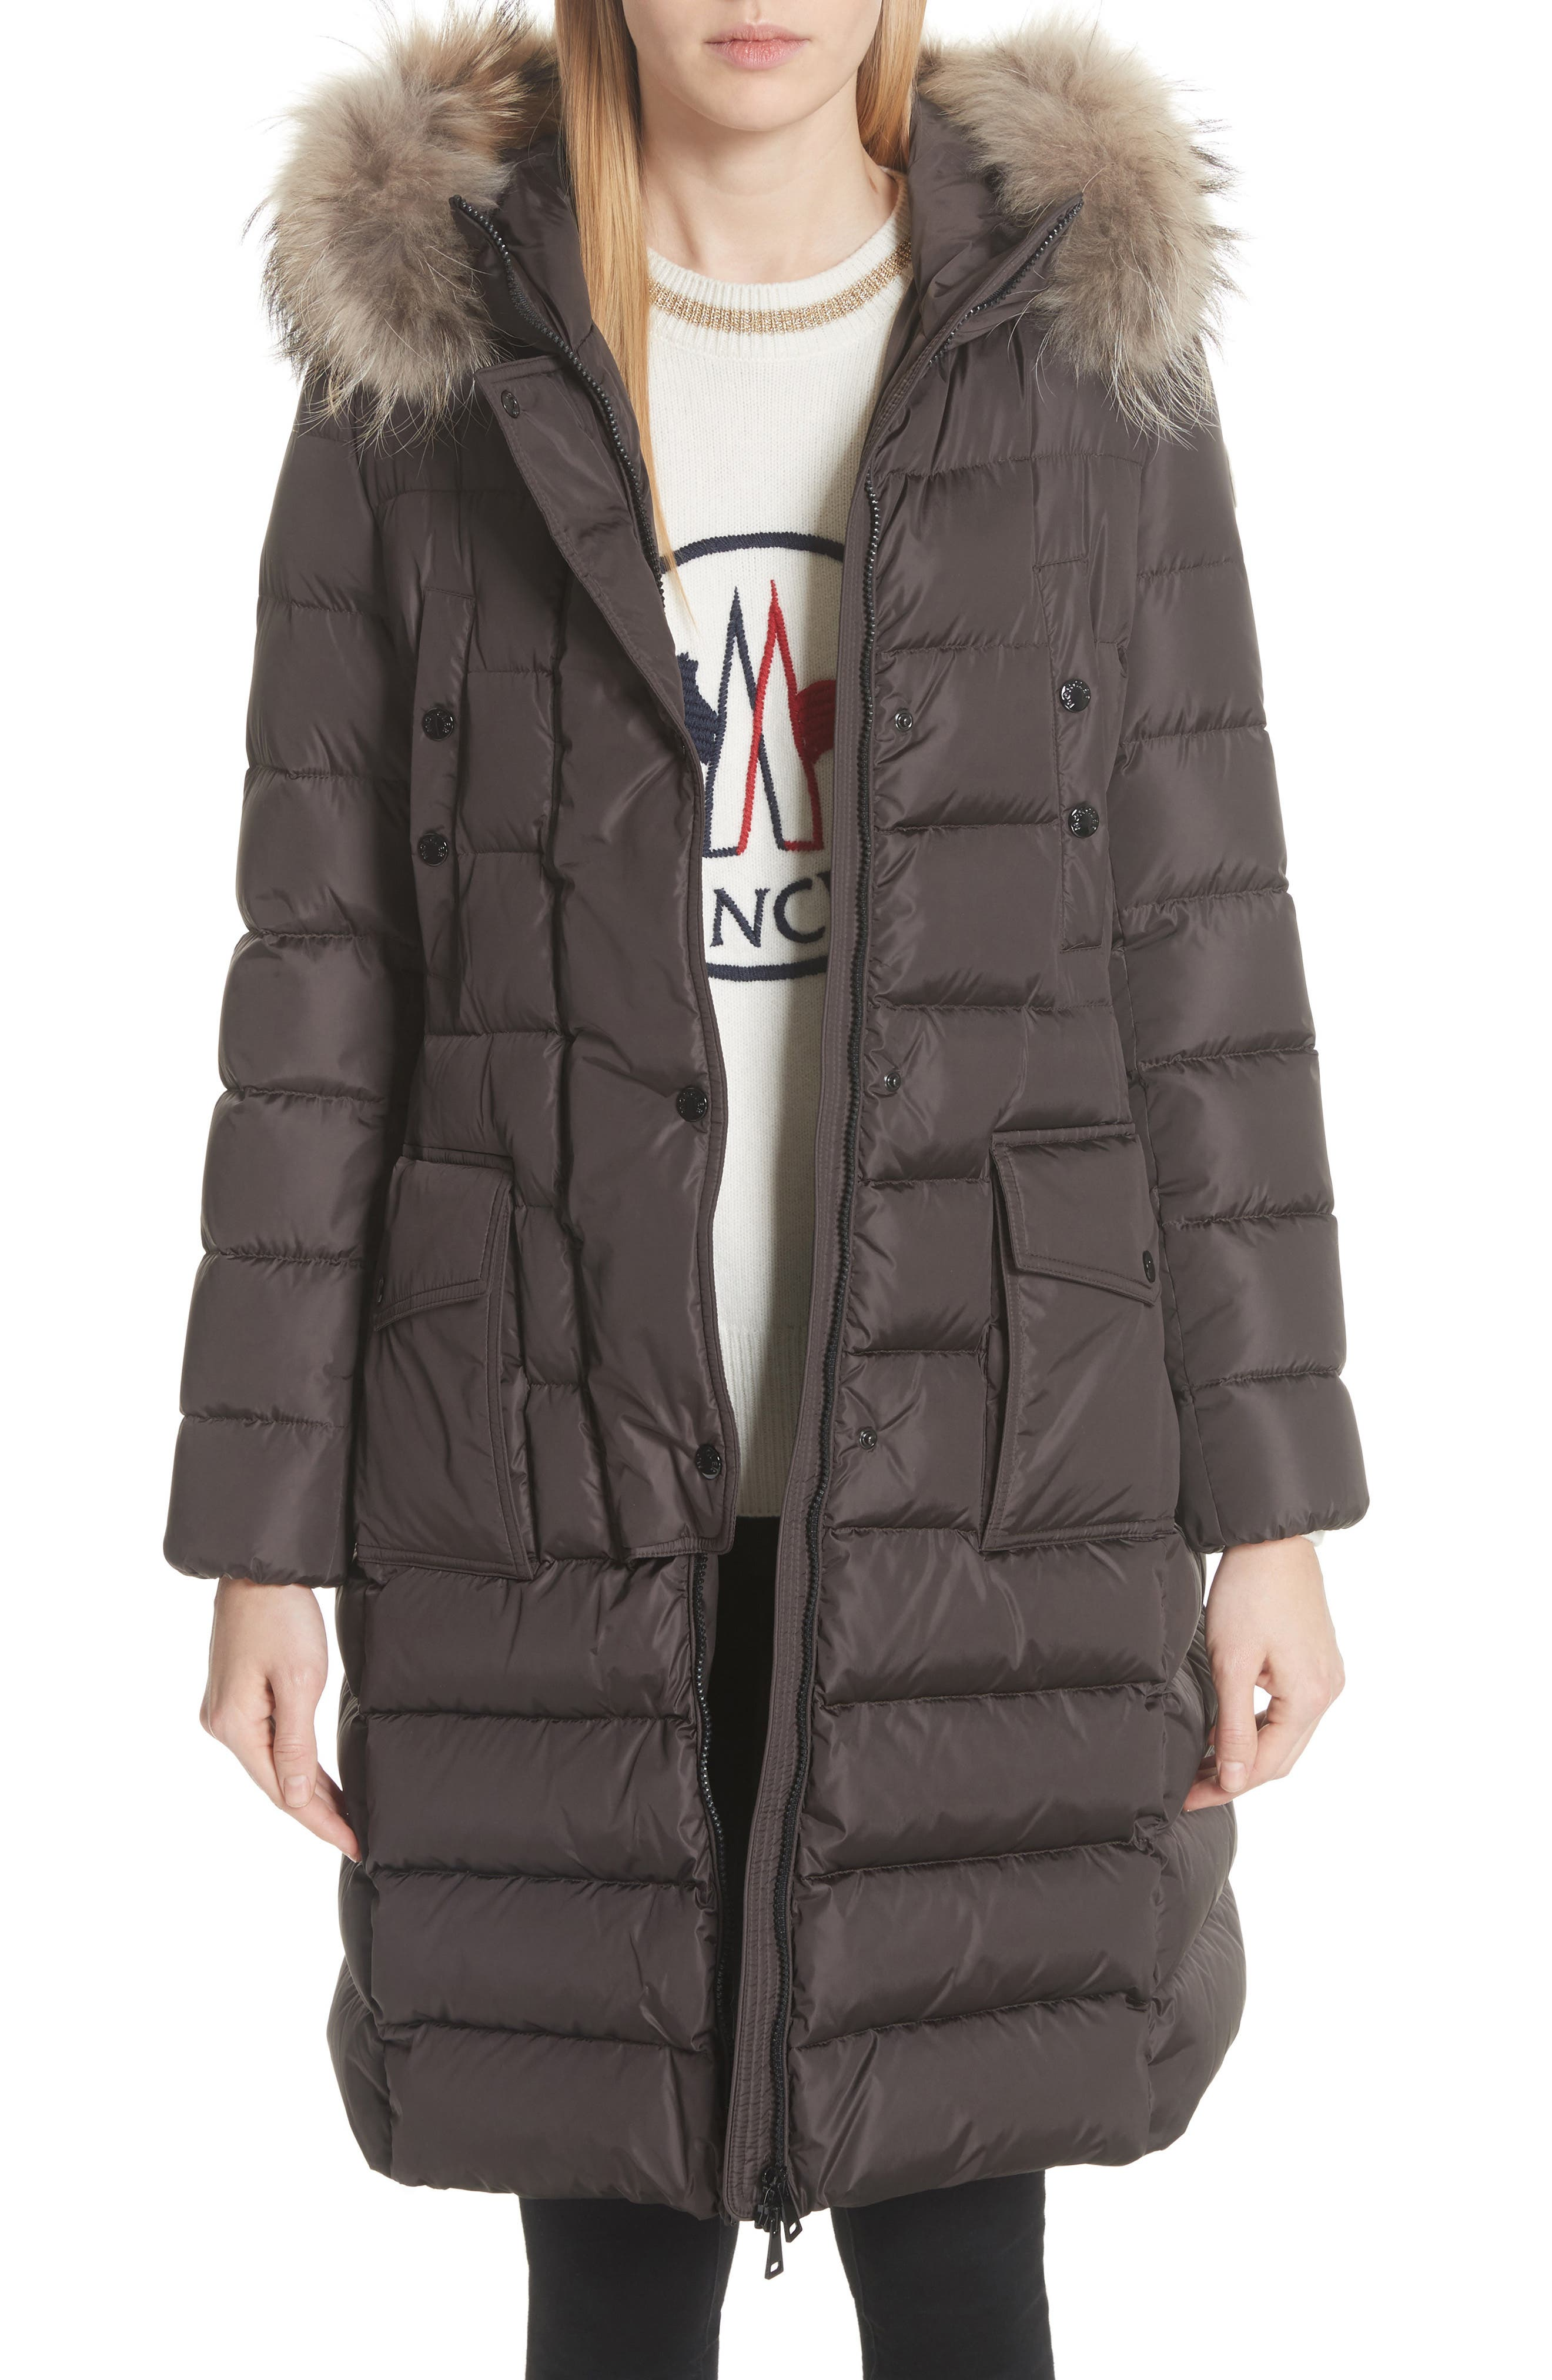 MONCLER 'Khloe' Water Resistant Nylon Down Puffer Parka with Removable Genuine Fox Fur Trim, Main, color, BROWN